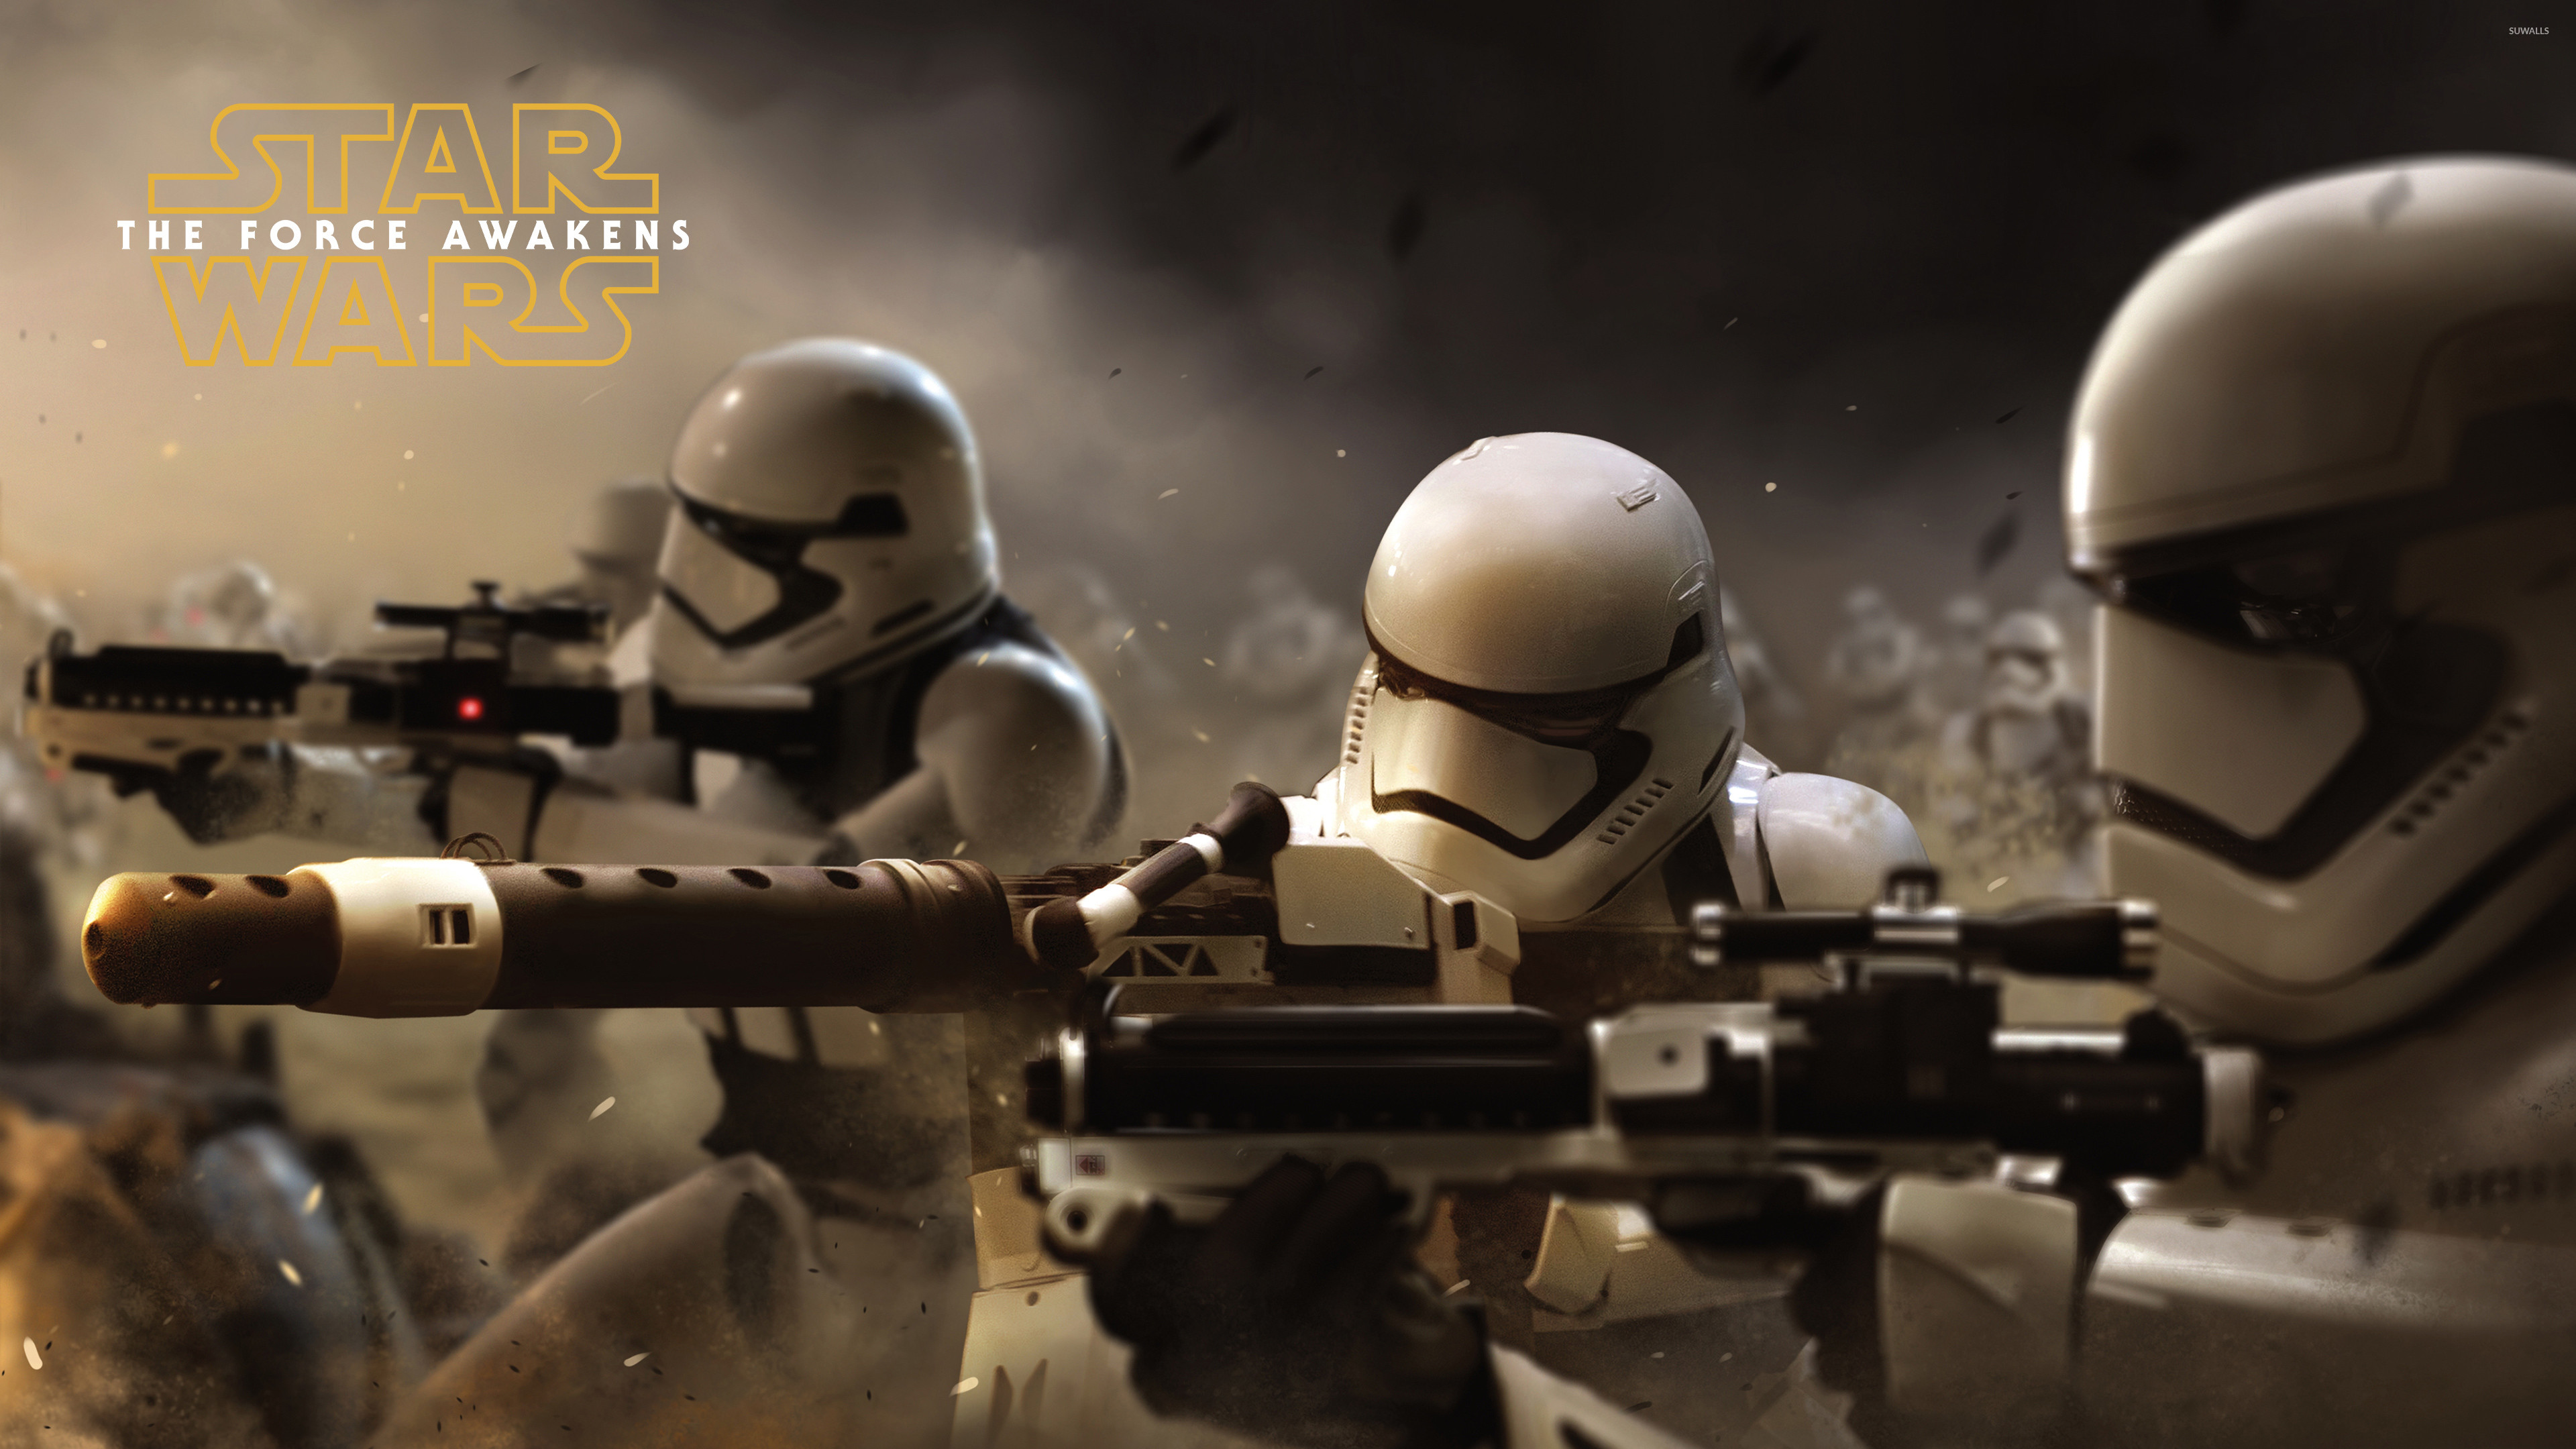 3840x2160 Stormtroopers in Star Wars: The Force Awakens wallpaper  jpg